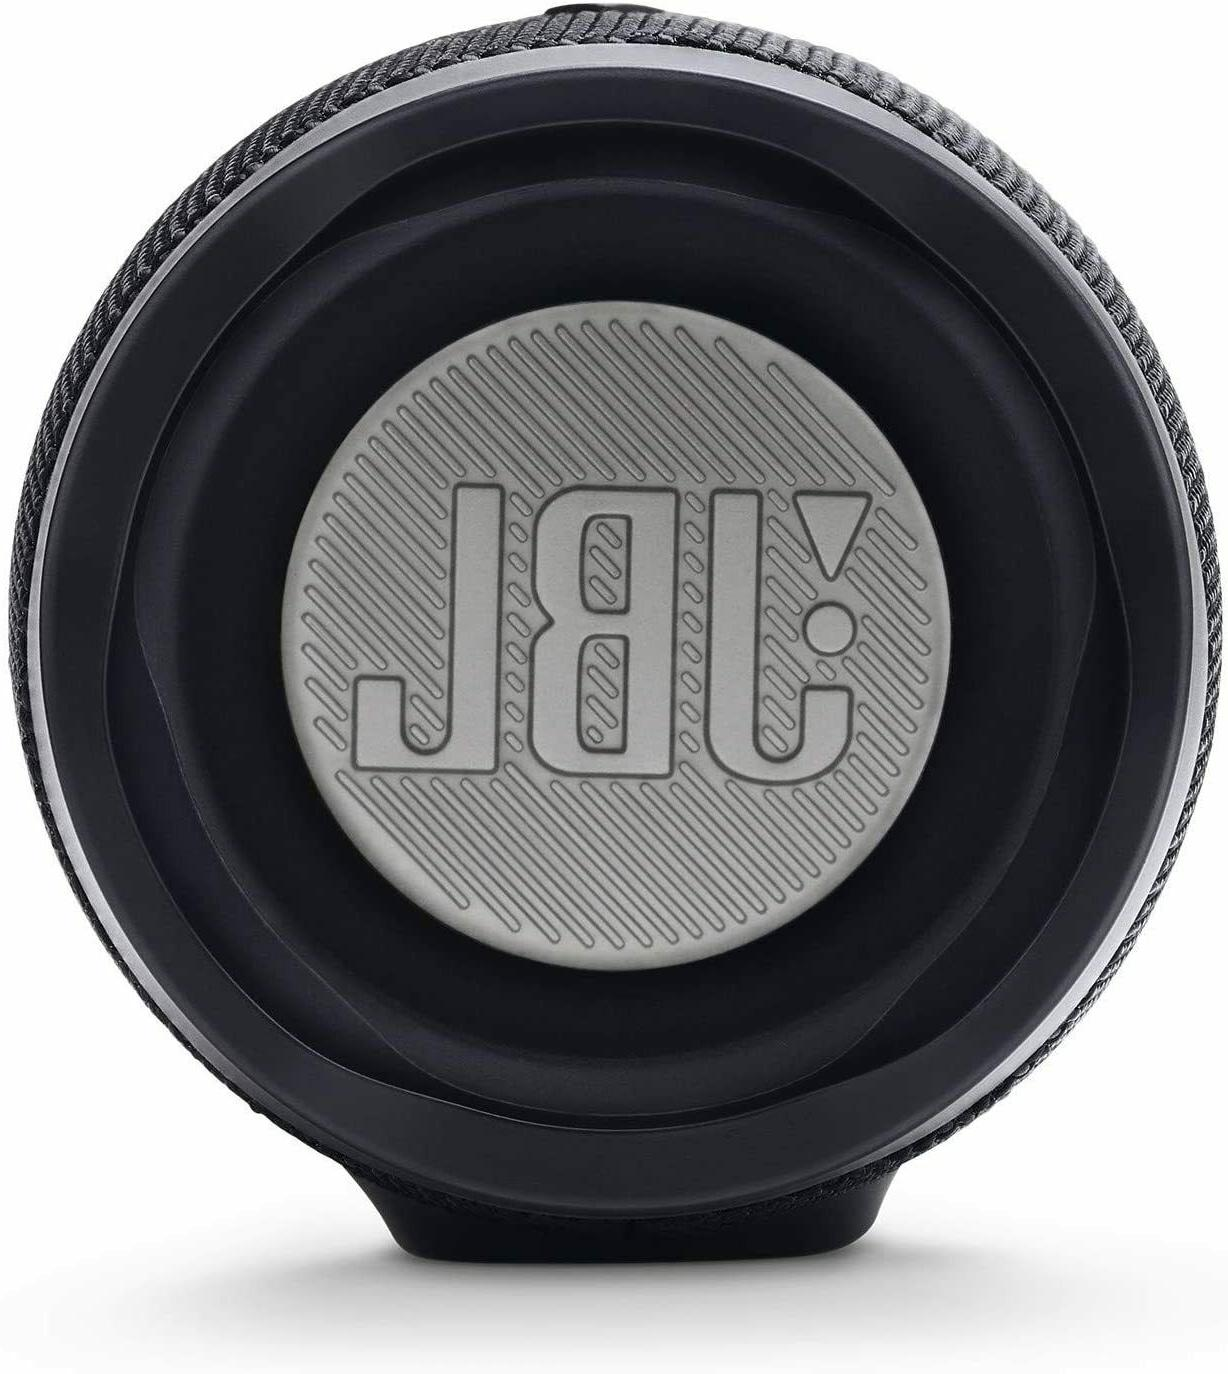 NEW! JBL Charge Portable Wireless Speaker